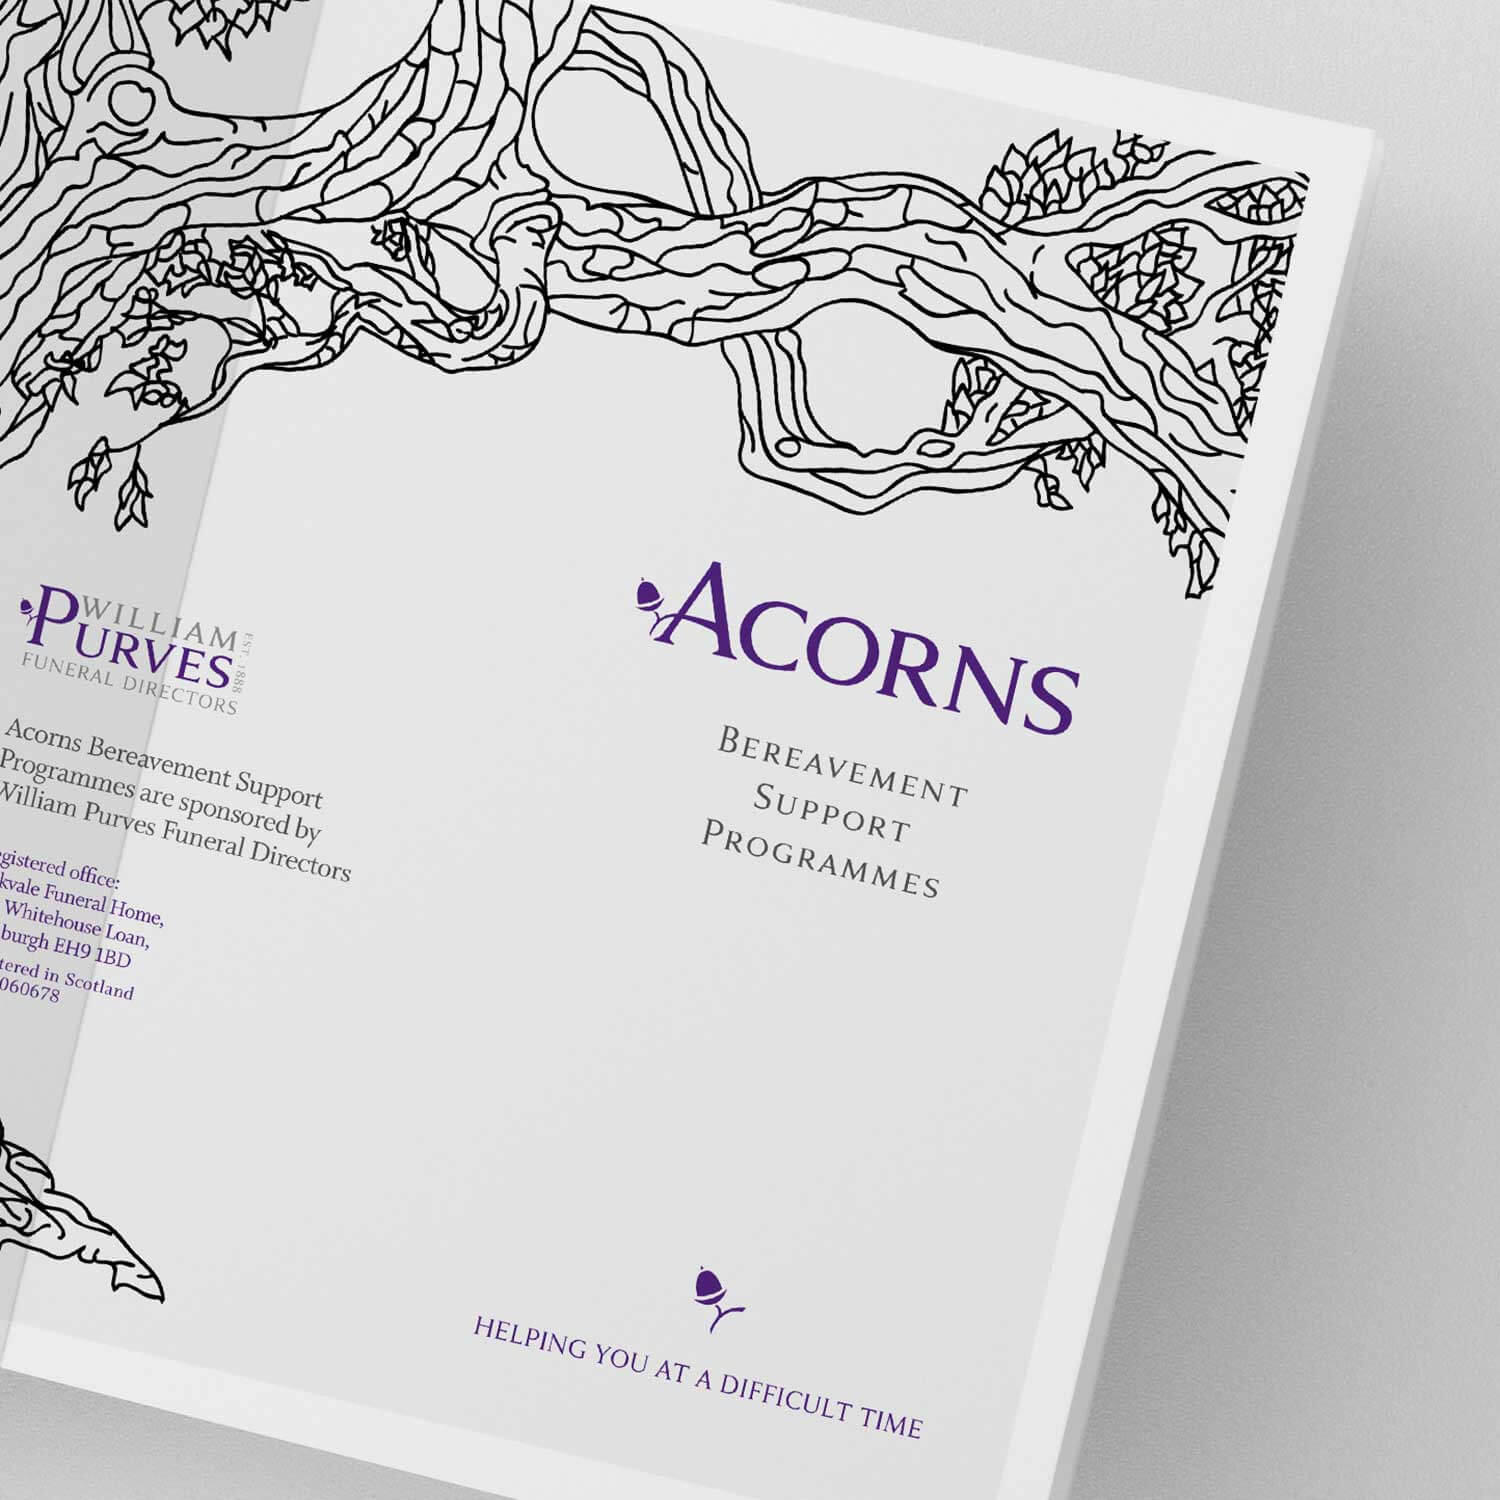 Graphic design example for funeral industry marketing